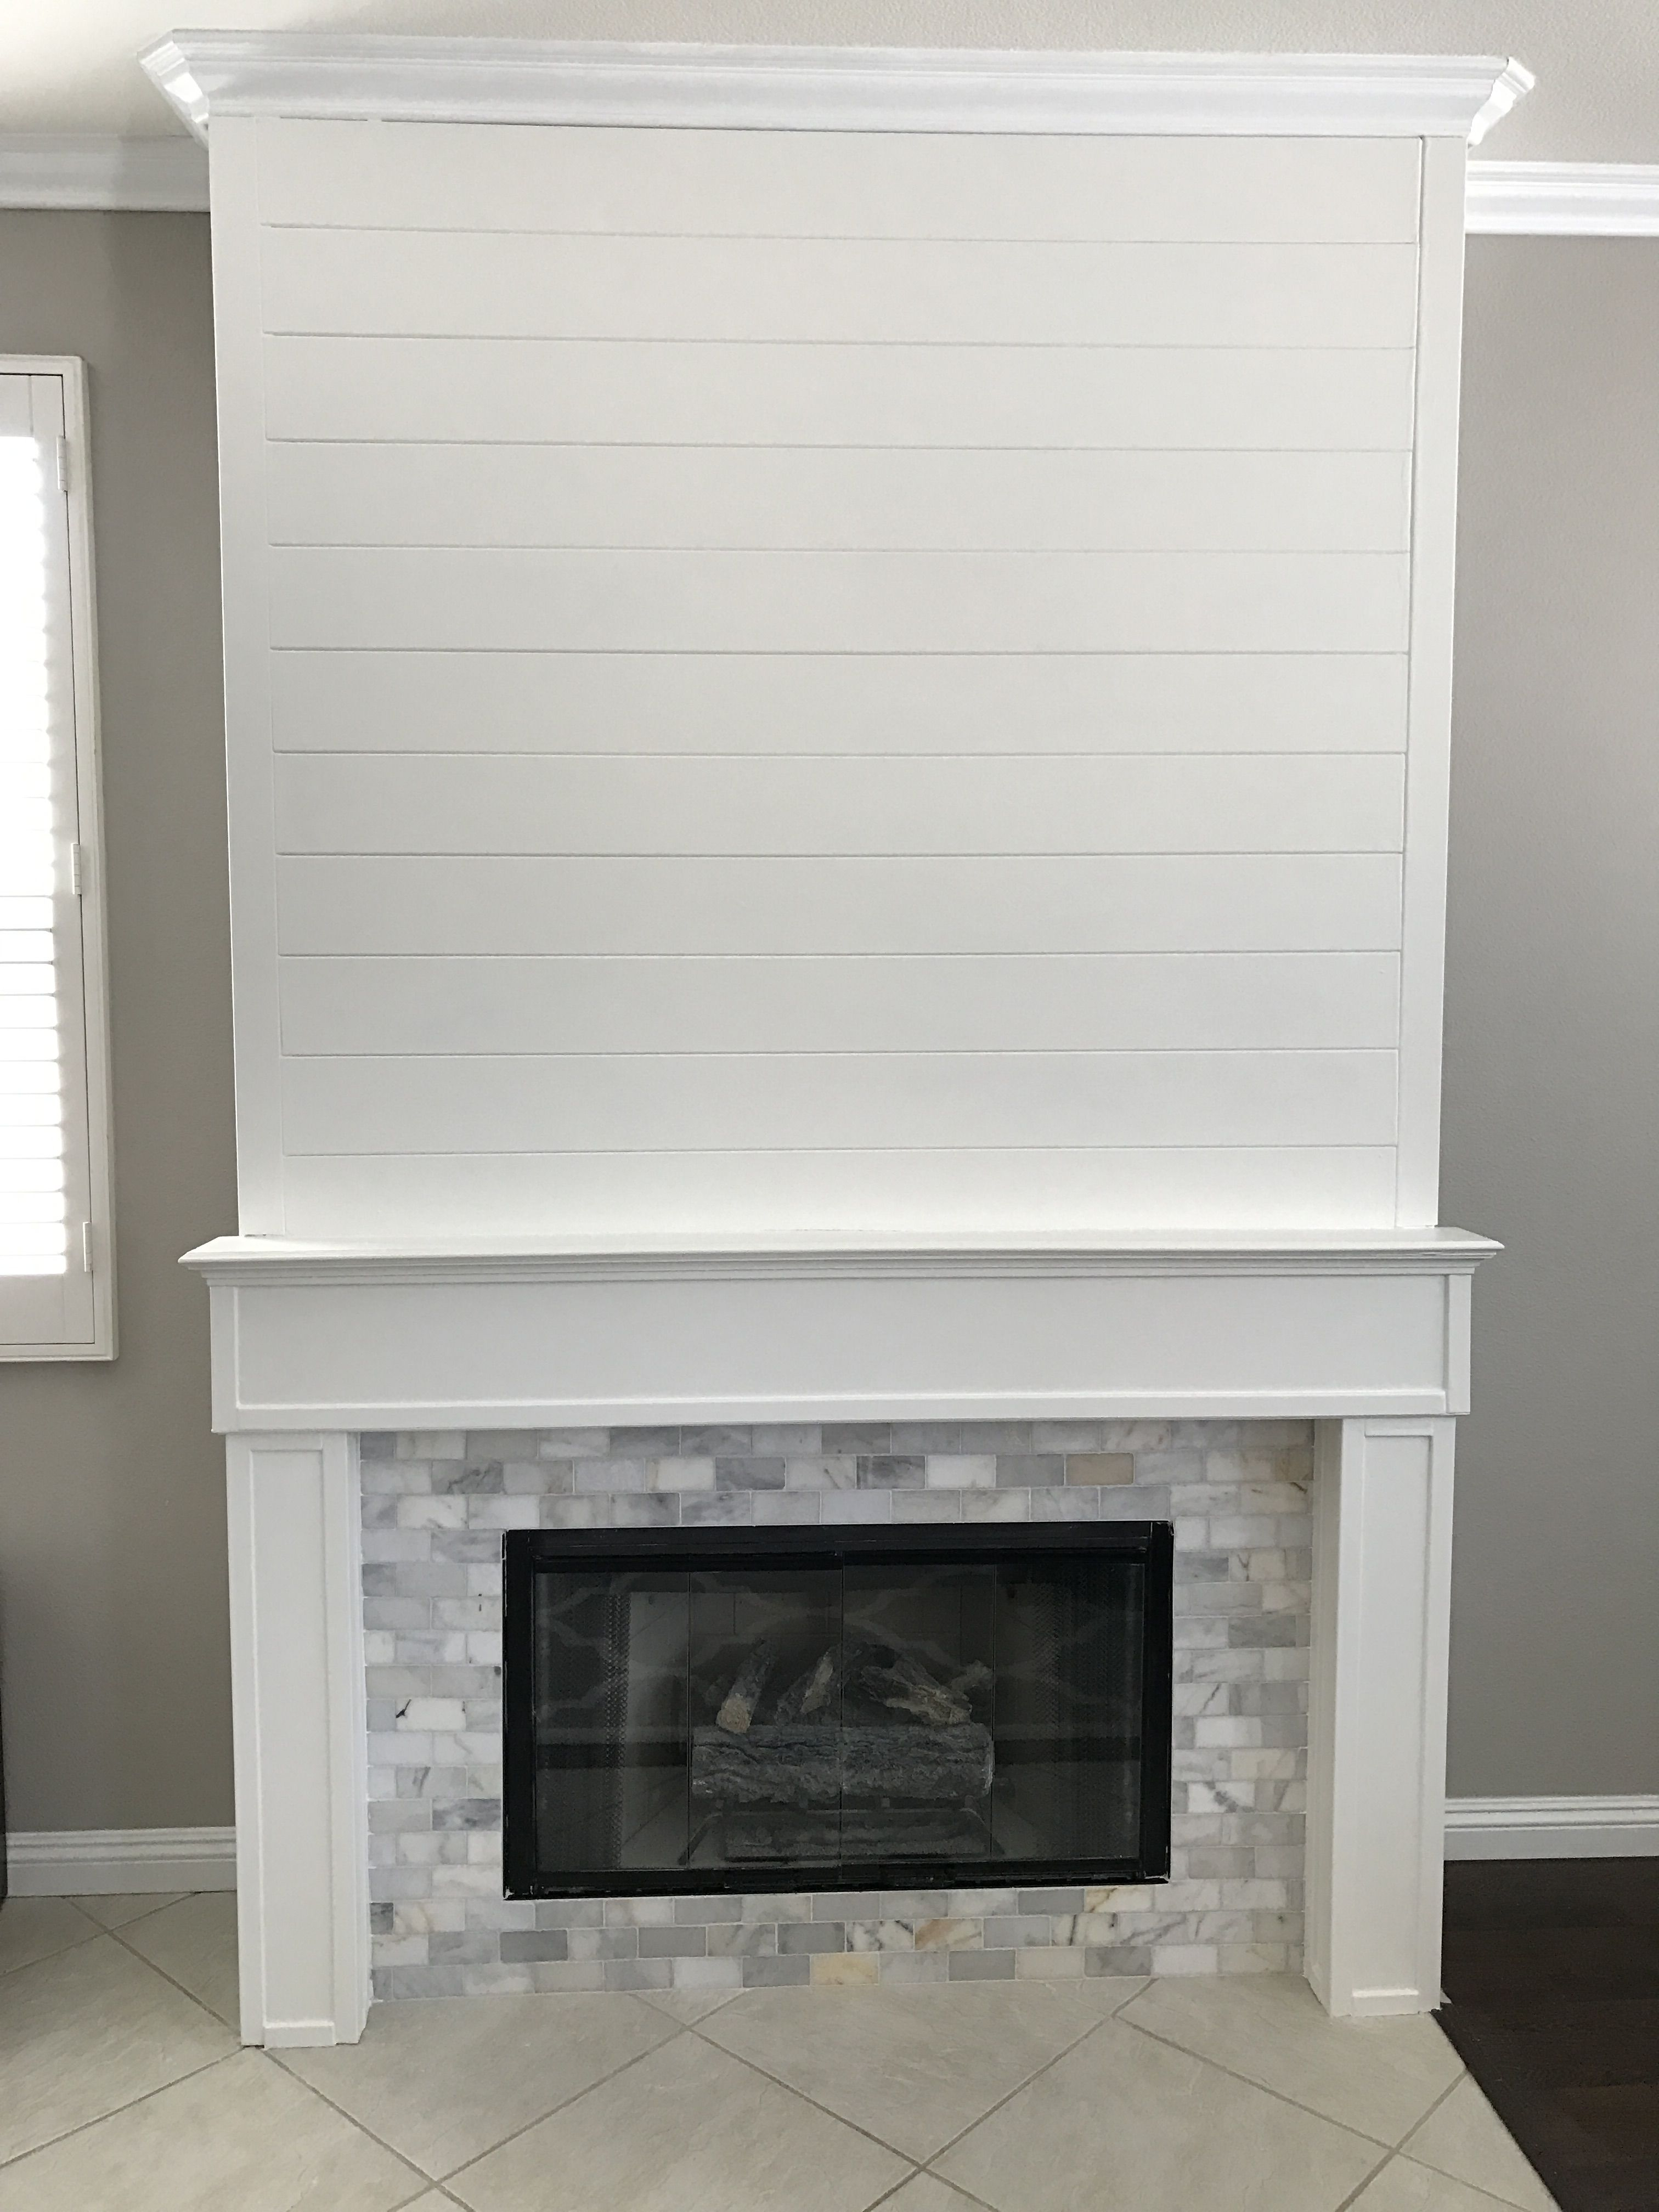 designs slate slab brick floor pictures hearth fireplaces ocala wall for to decor facing home marble ideas surrounds fireplace tile surround ceiling modern faux finish